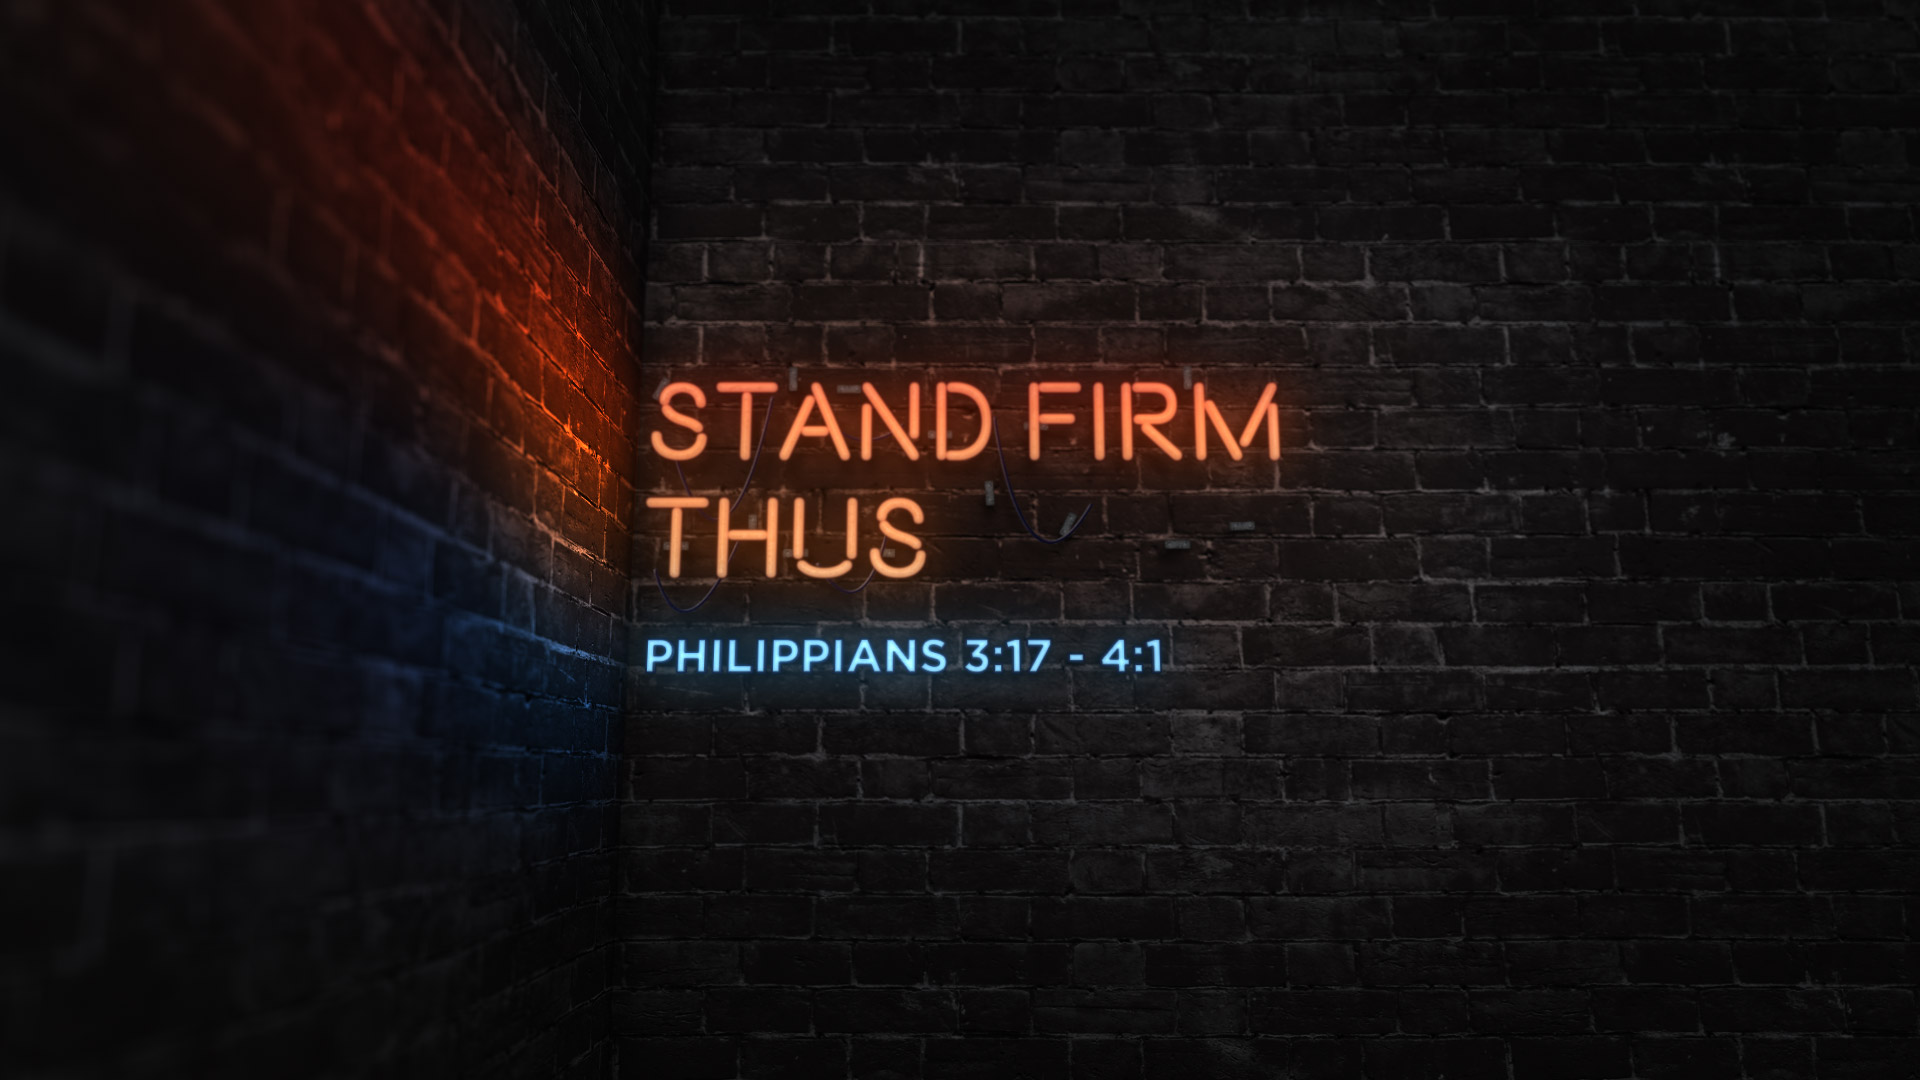 Stand Firm Thus